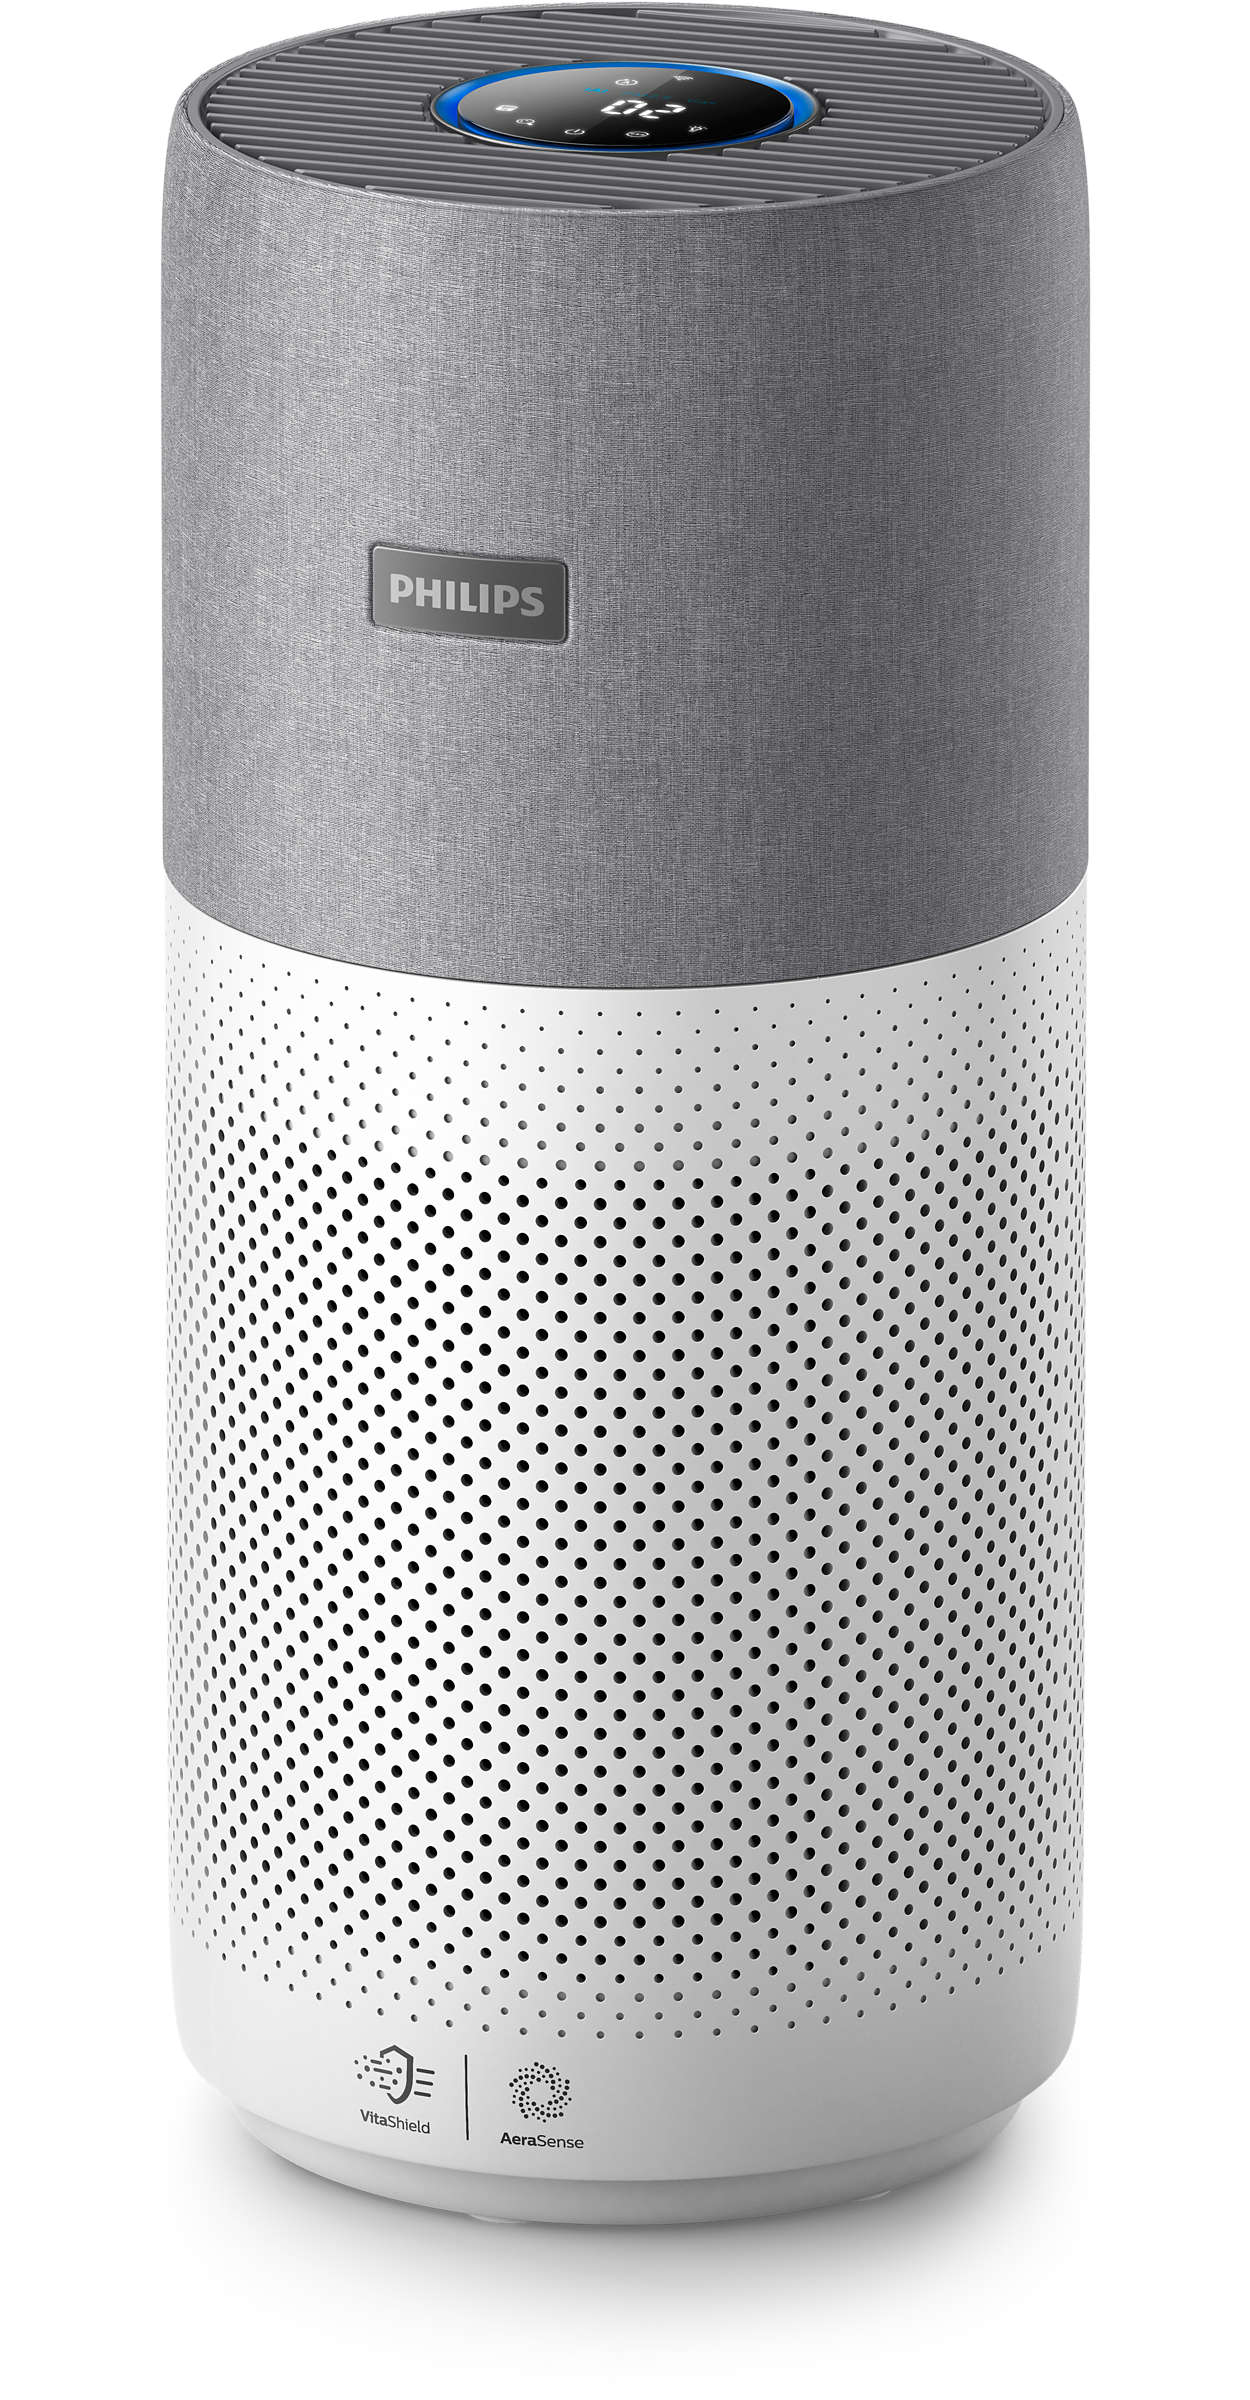 Clean, allergen-free* air in minutes